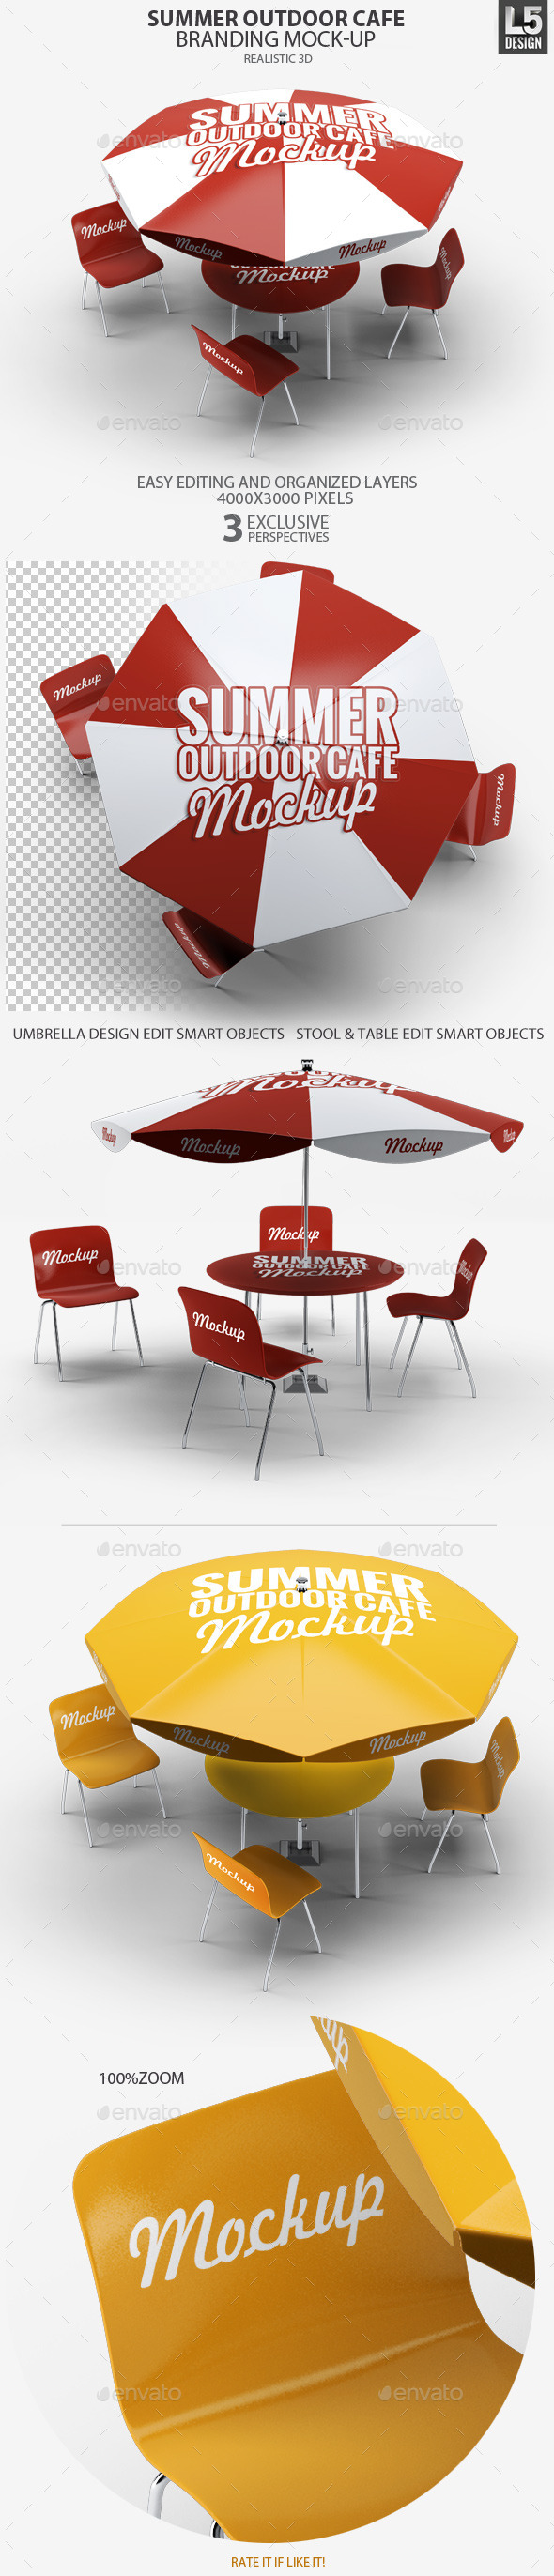 GraphicRiver Summer Outdoor Cafe Branding Mock-Up 10633581